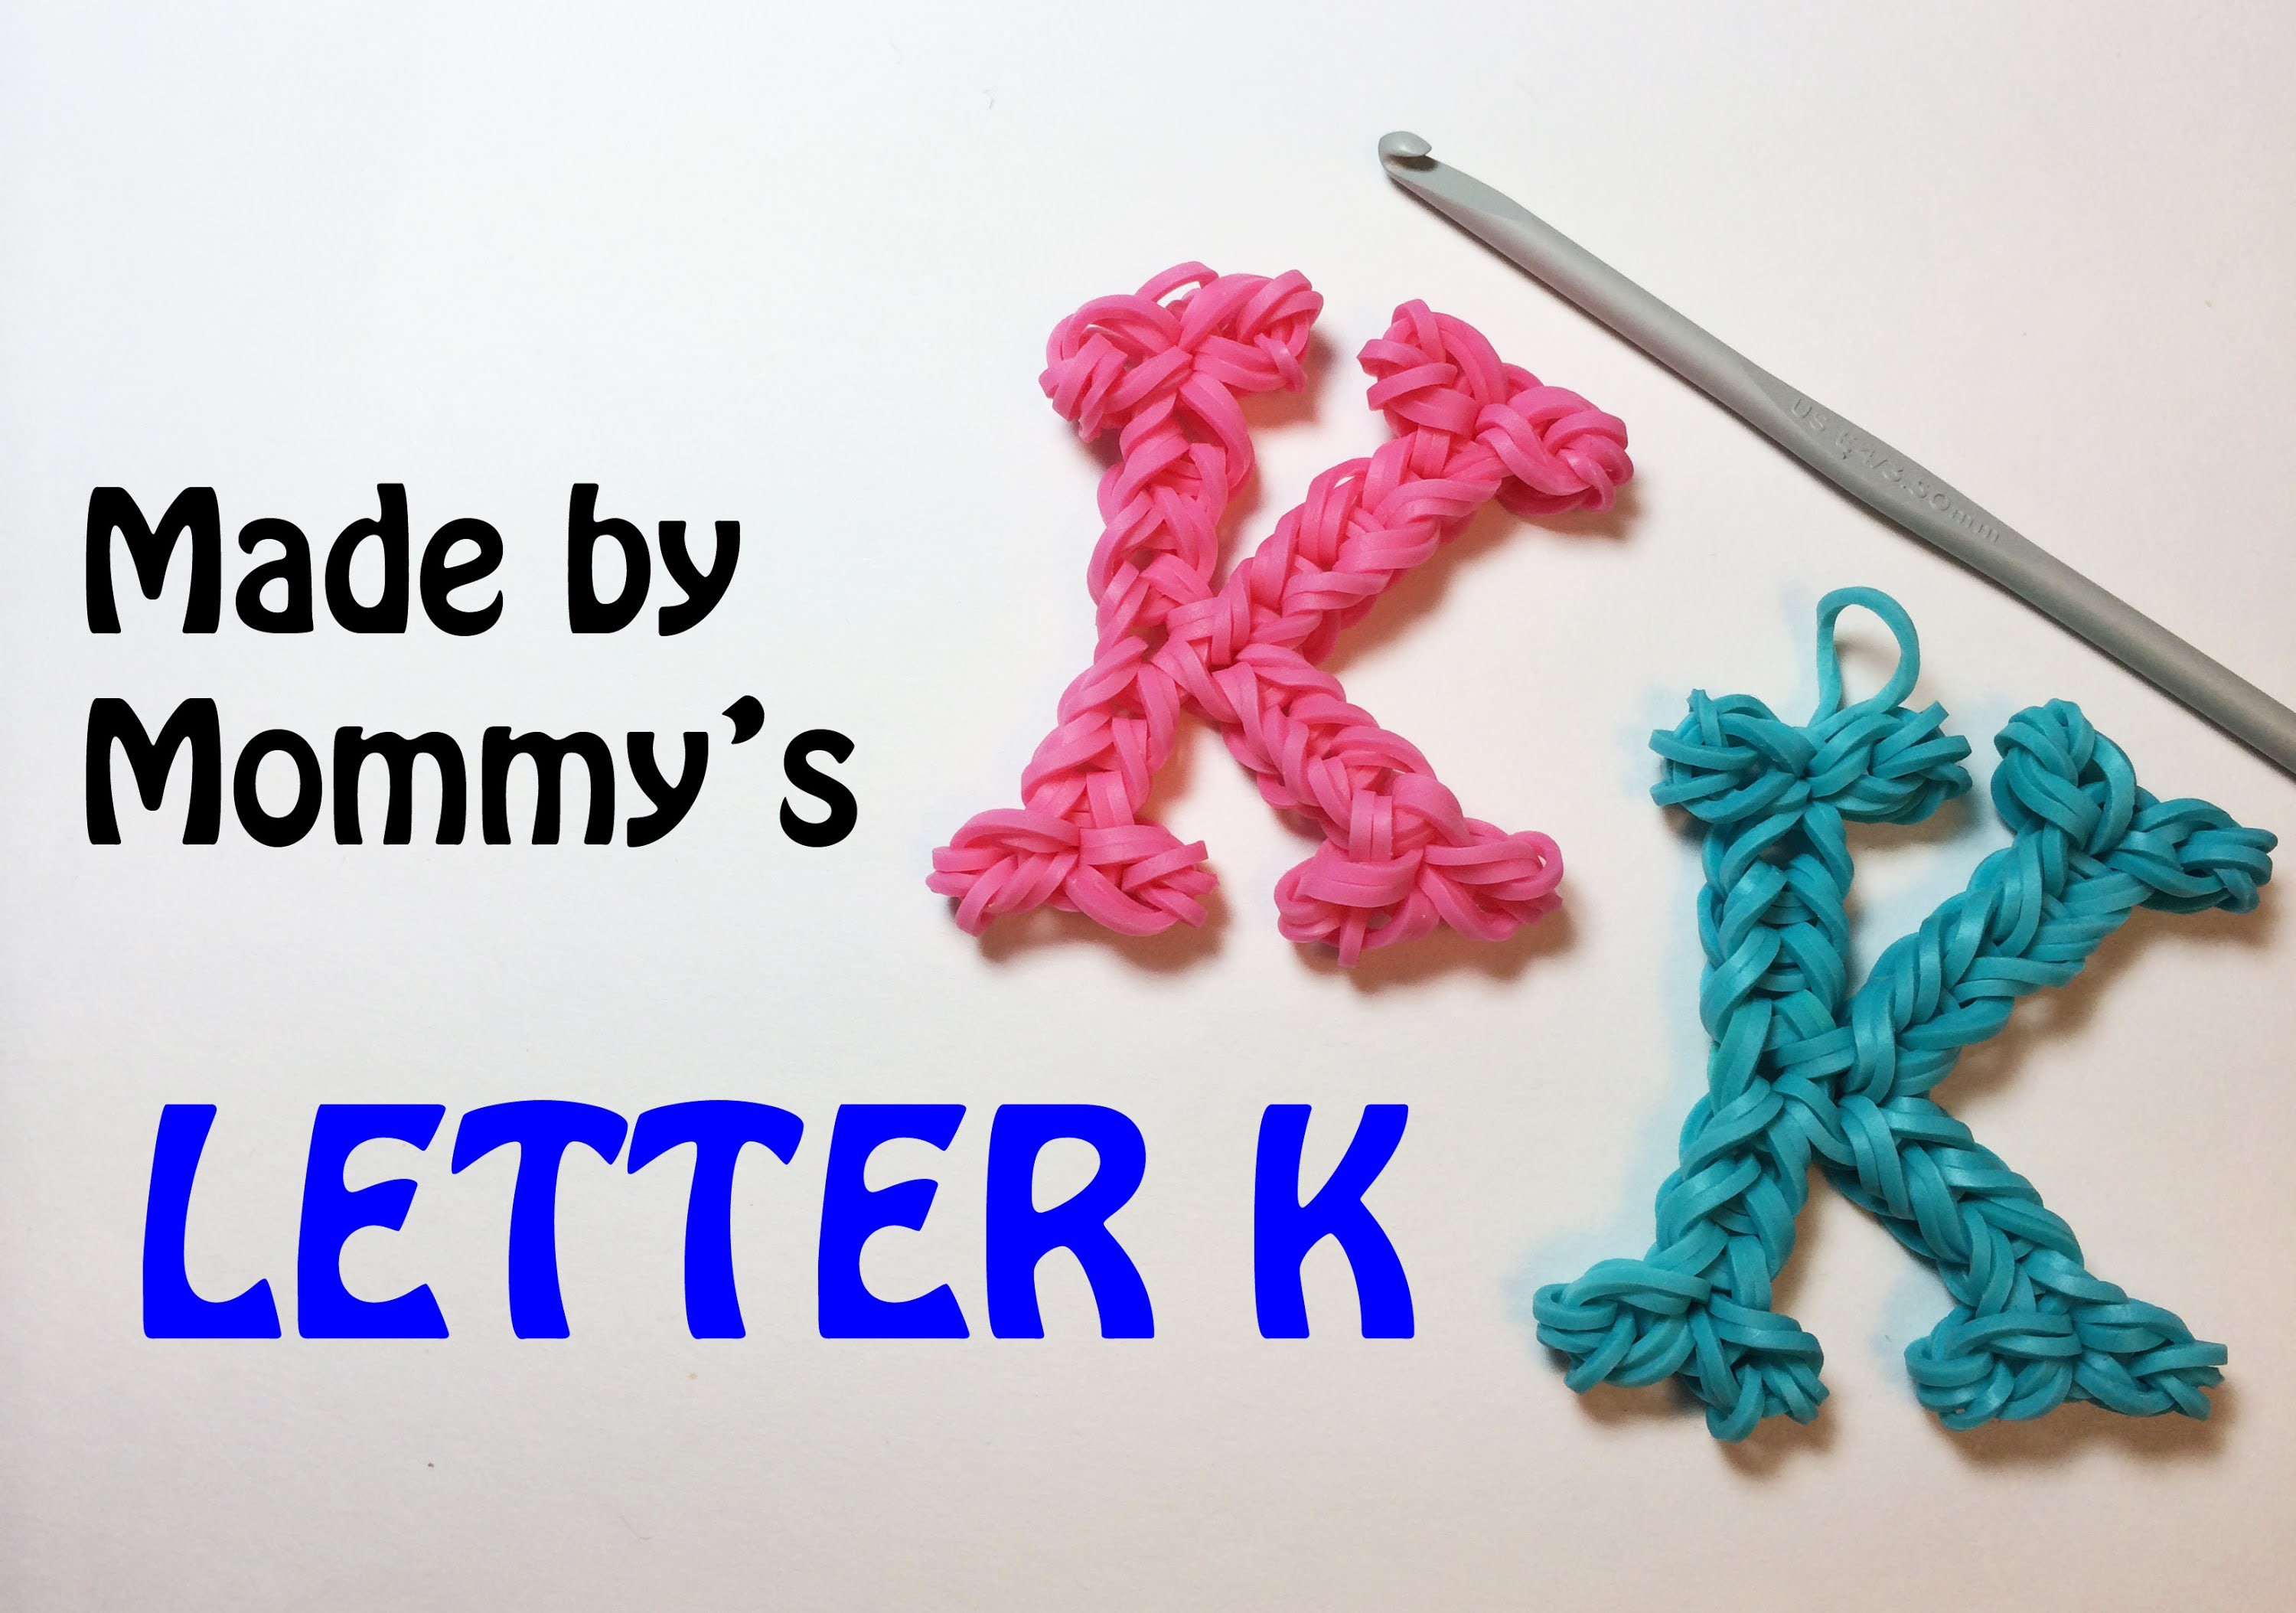 Rainbow Loom Bands Letter K Charm Using Just a Crochet Hook